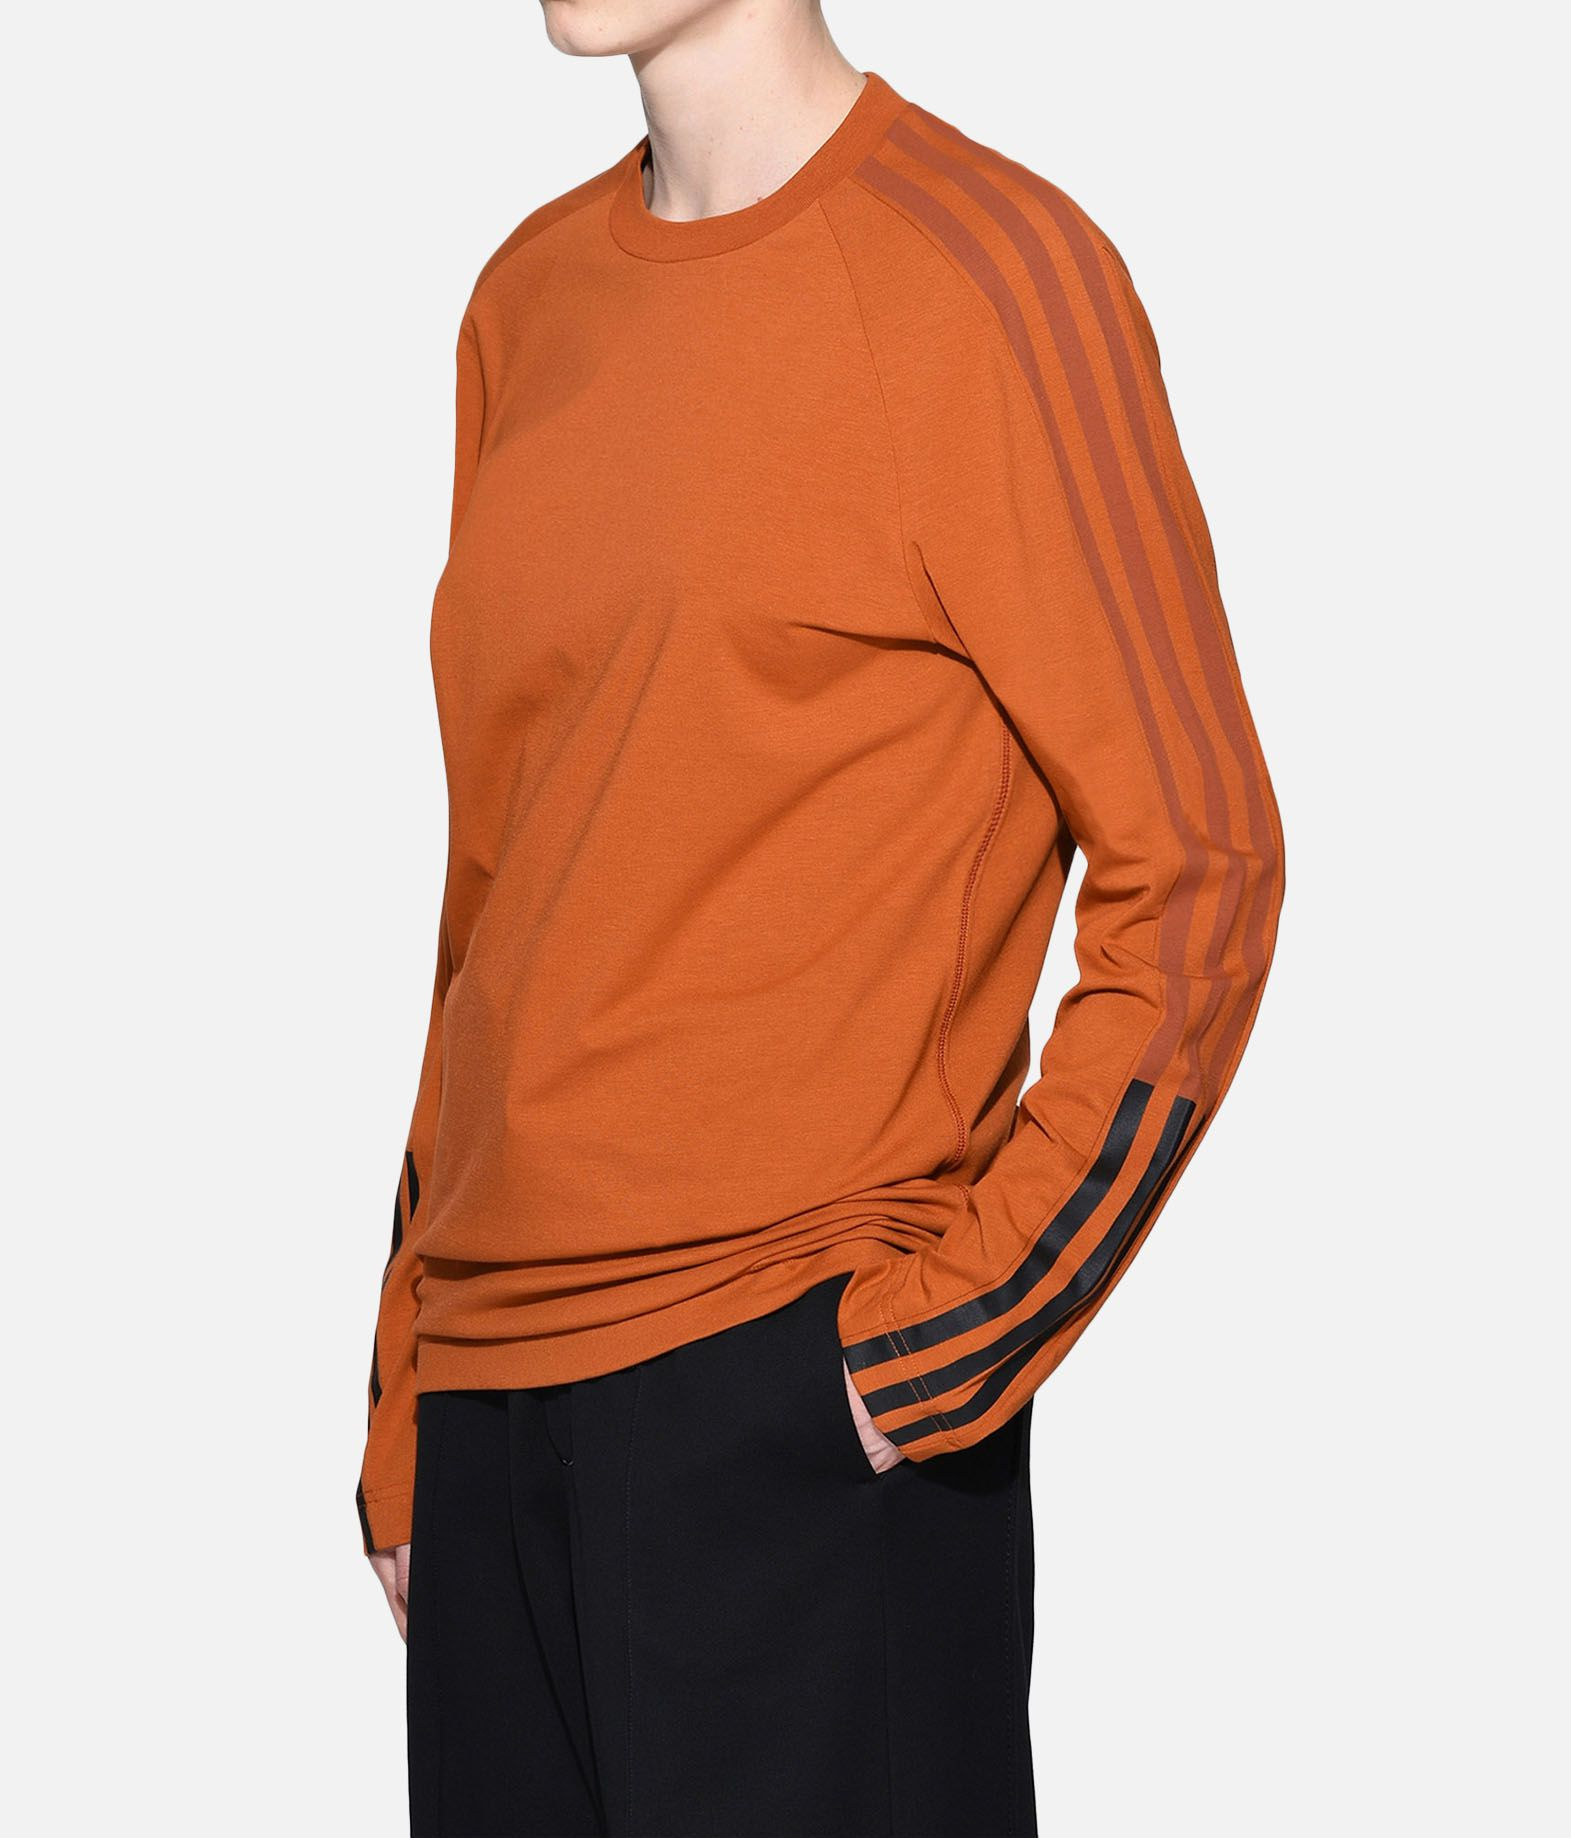 Y-3 Y-3 3-Stripes Tee Long sleeve t-shirt Woman e